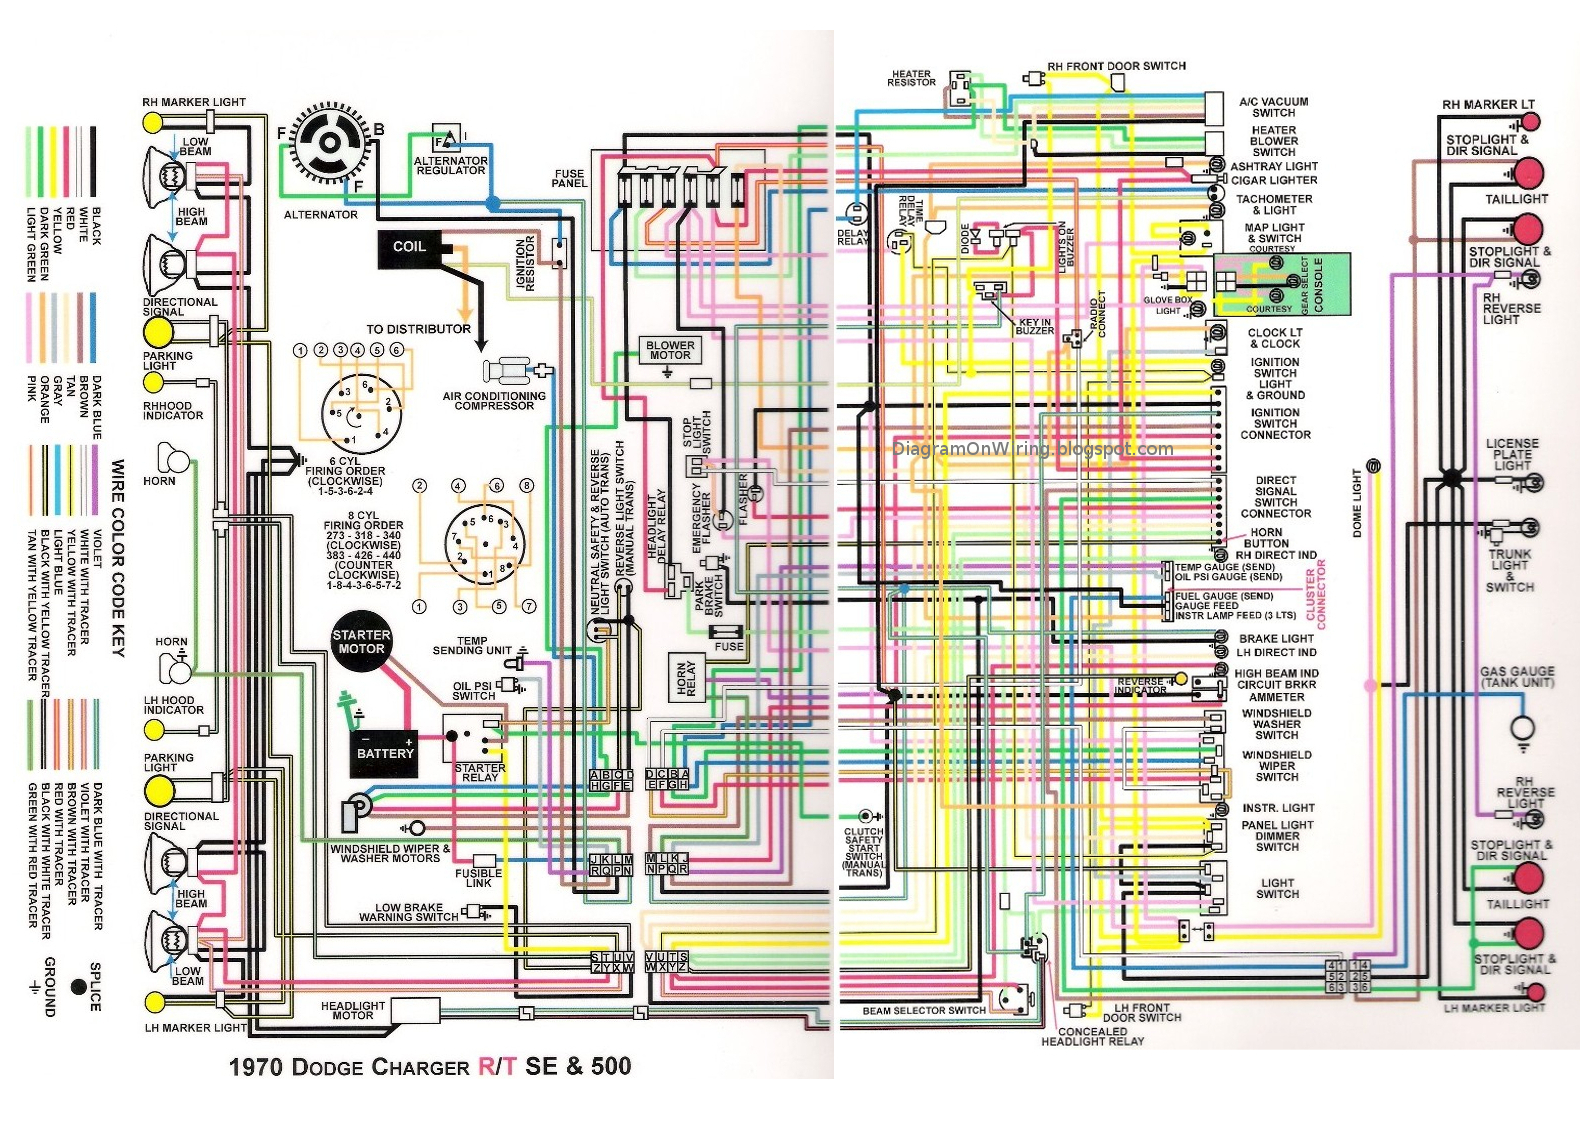 68 Mopar Wiring Diagram mopar alternator wiring diagram ... on